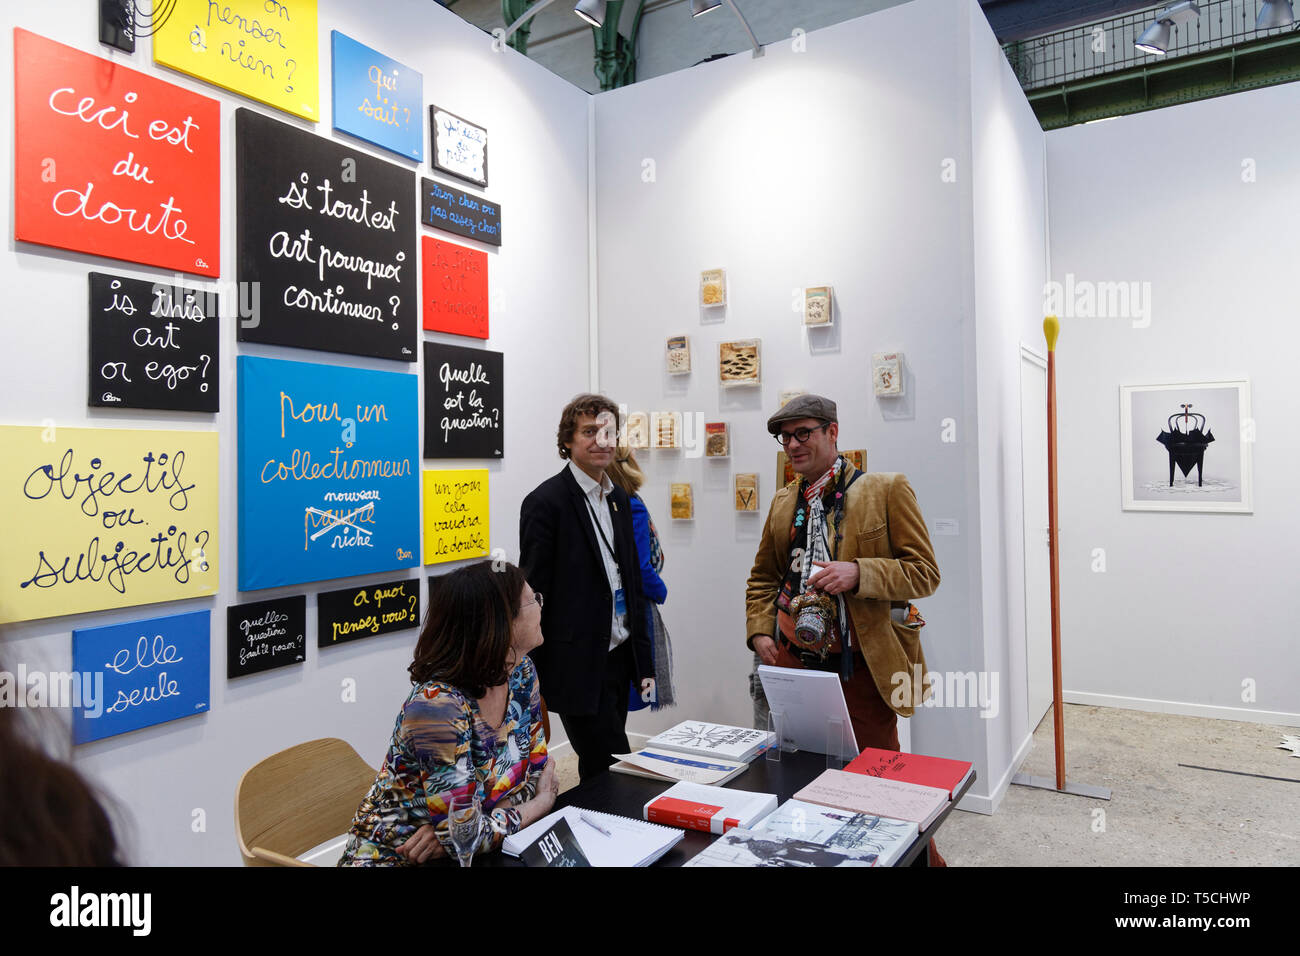 Paris, France. 3th April, 2019. Ben exibited at Paris Art Fair, Paris, 2019, France. Credit: Veronique Phitoussi/Alamy Stock Photo Stock Photo